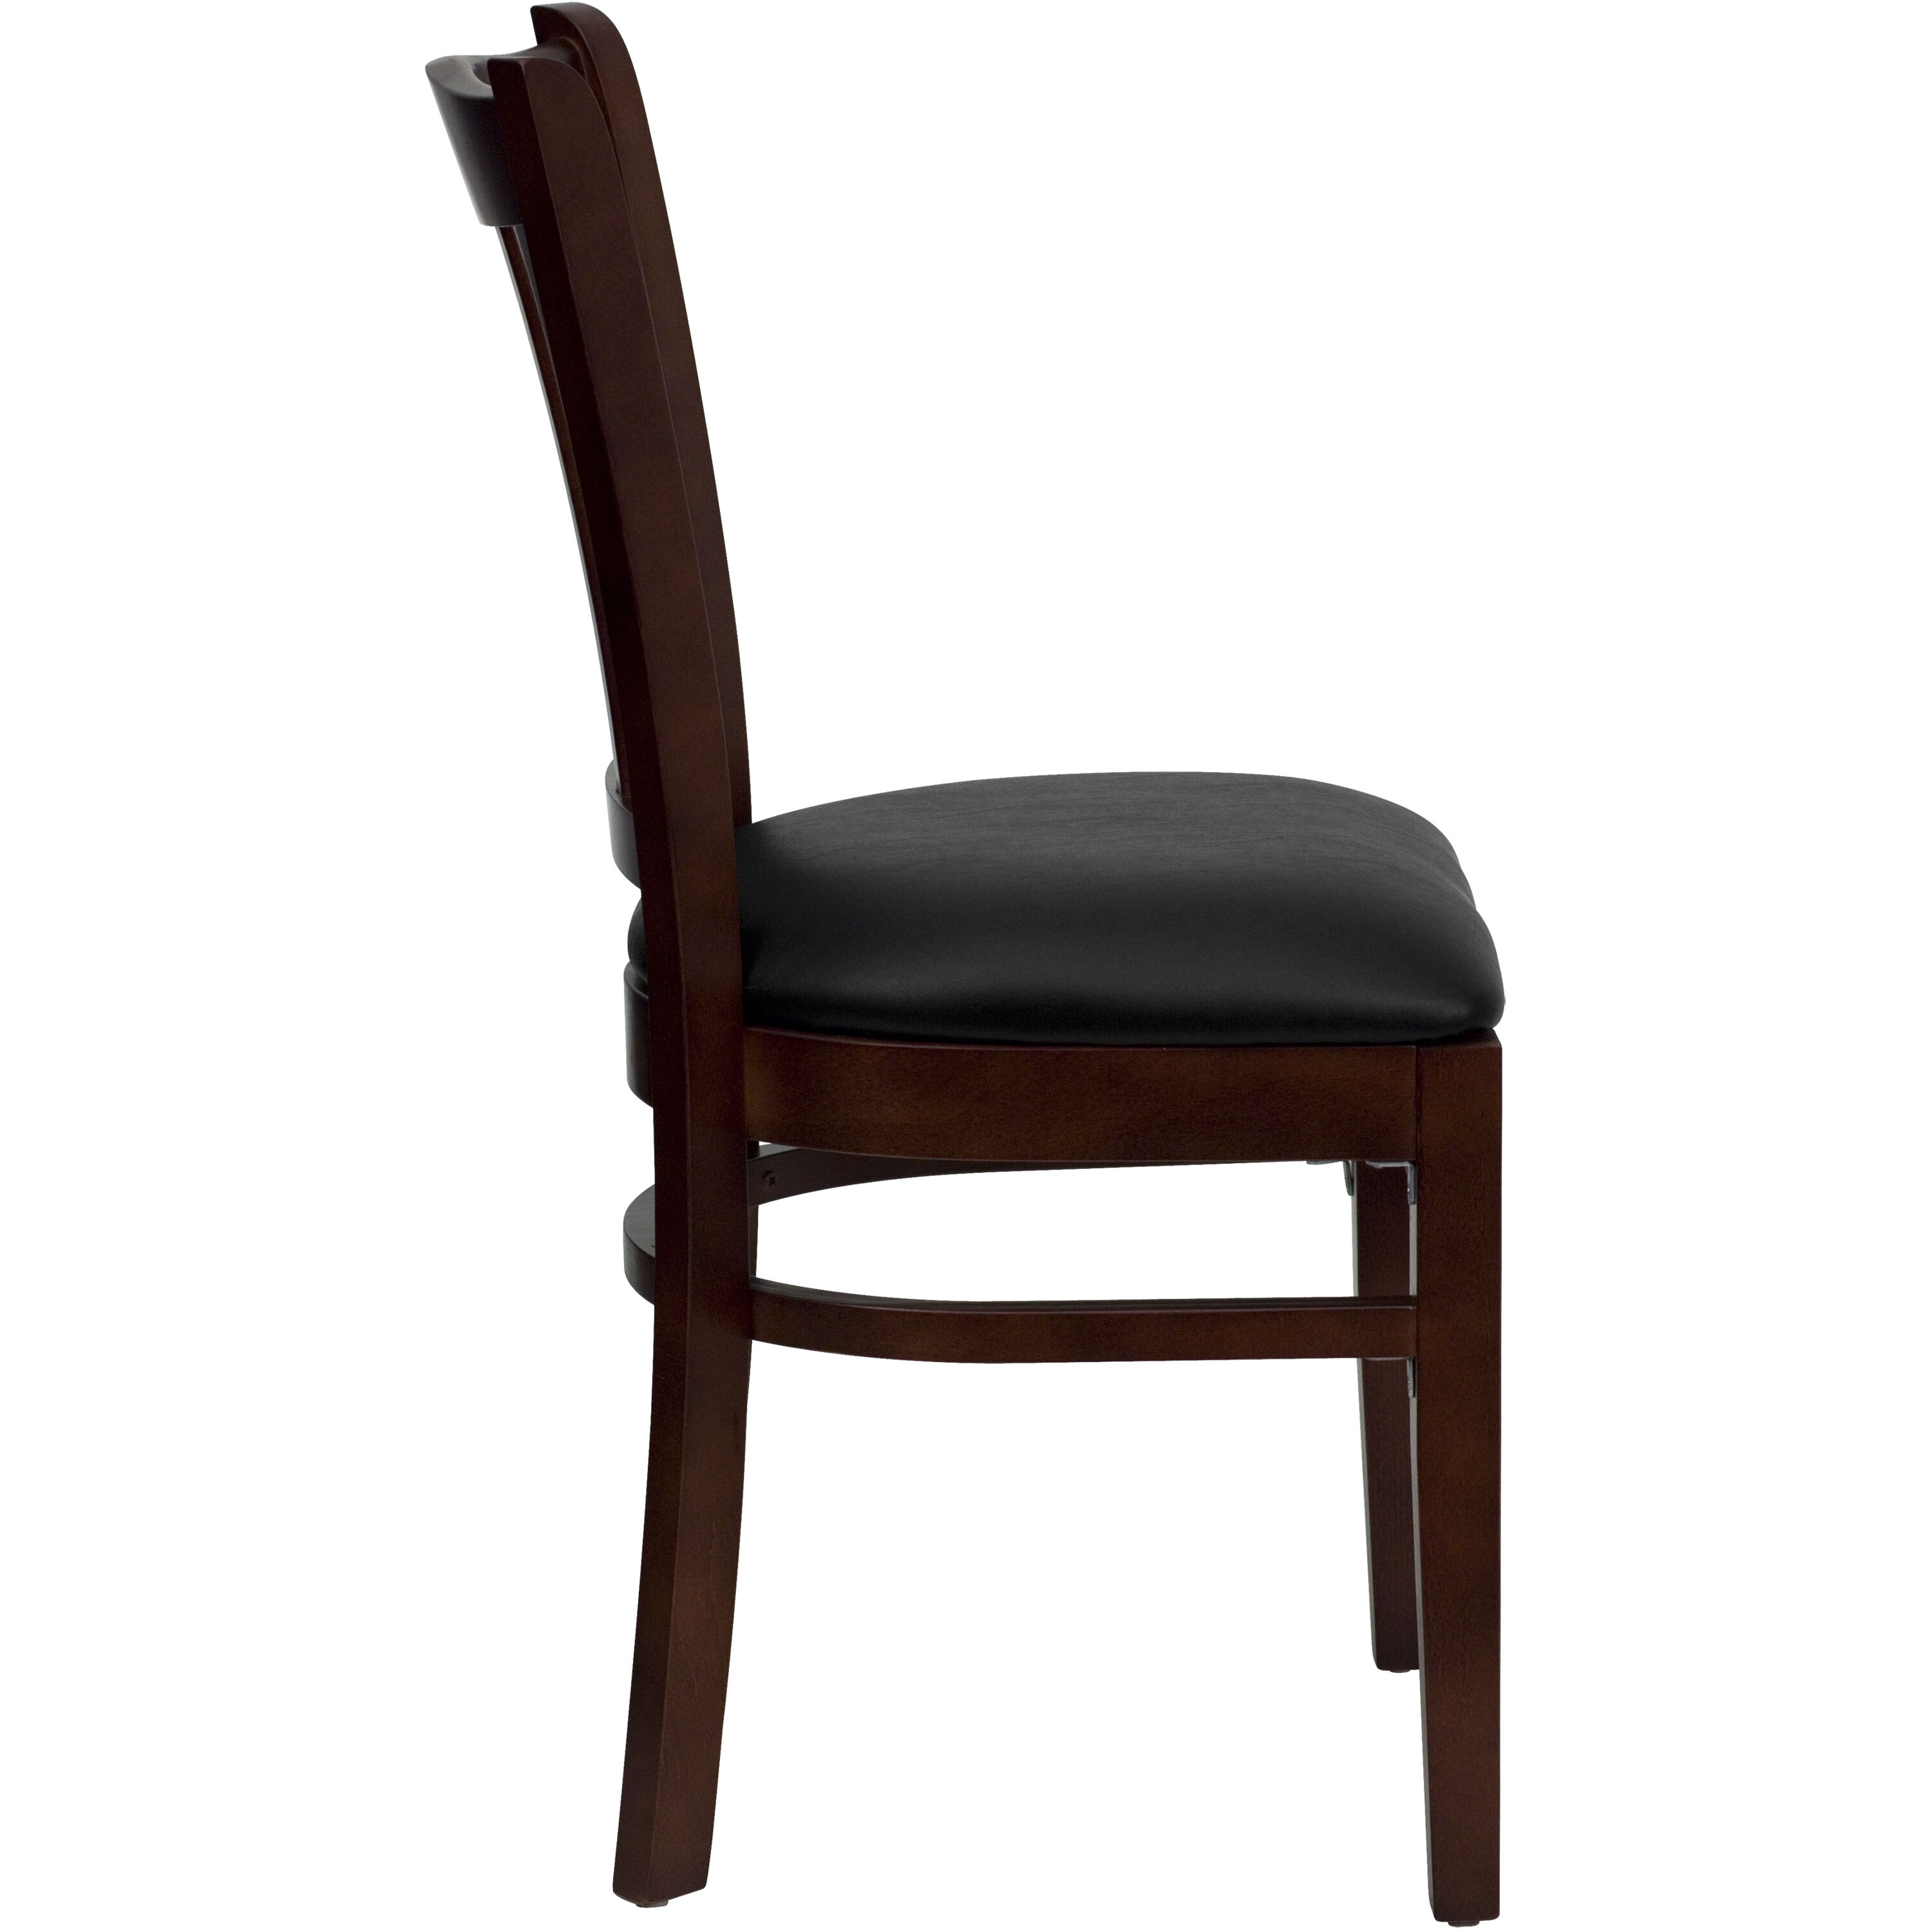 ... Our Mahogany Finished Vertical Slat Back Wooden Restaurant Chair With  Black Vinyl Seat Is On Sale ...